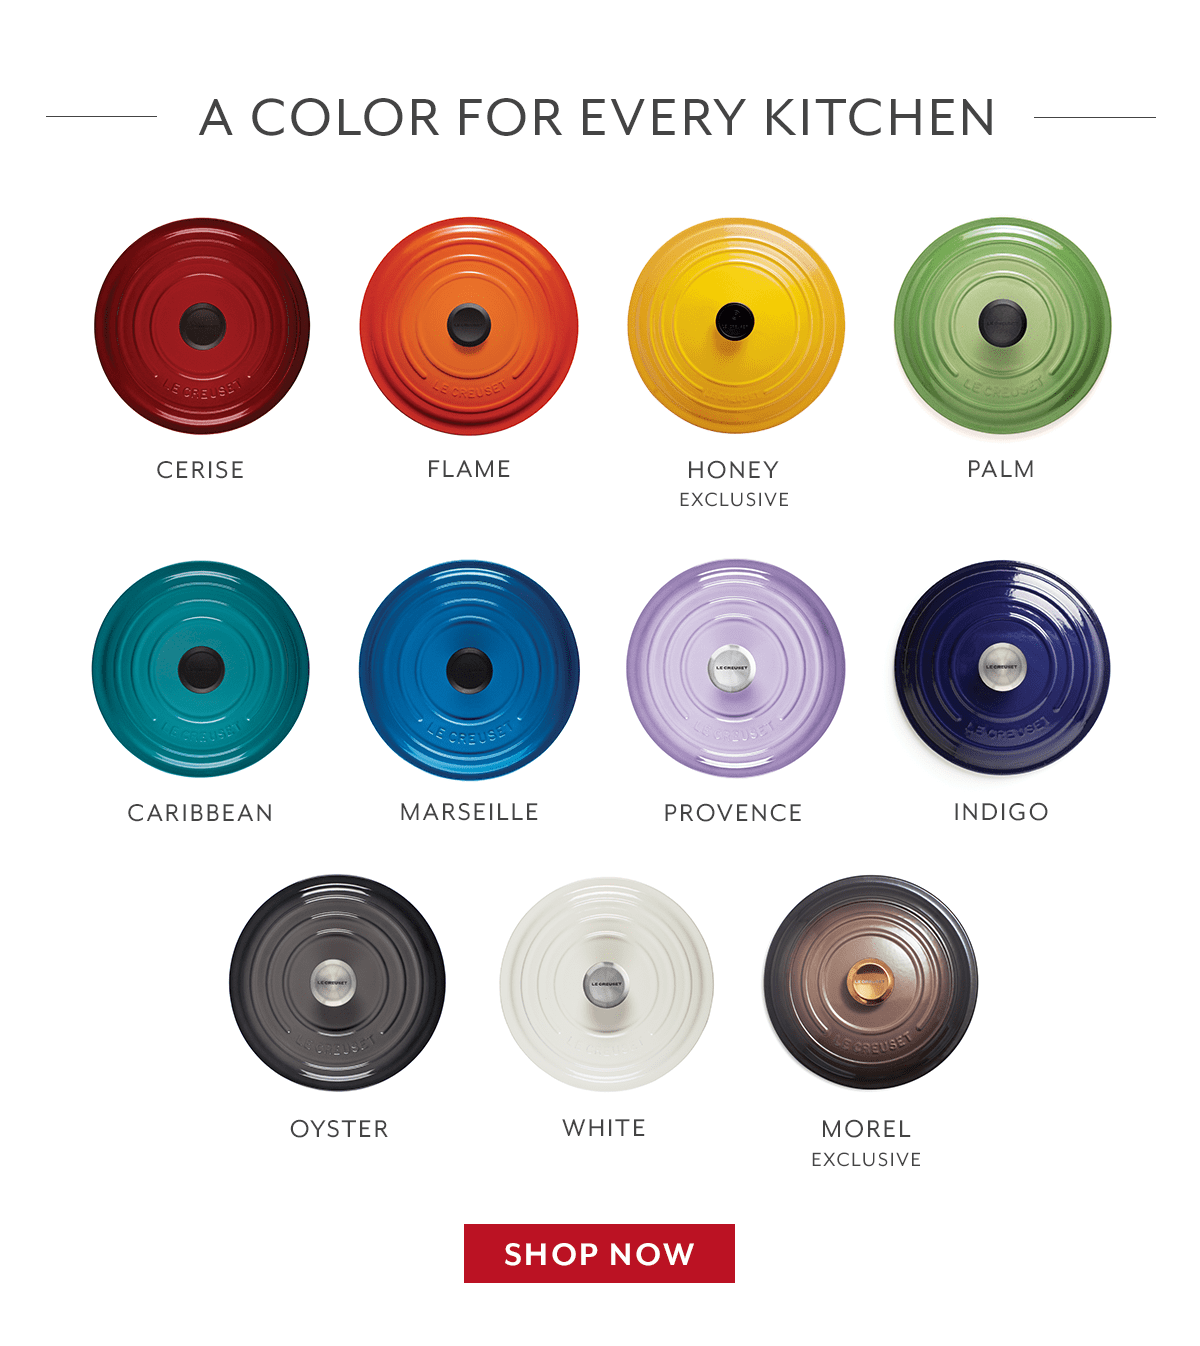 A Color for Every Kitchen